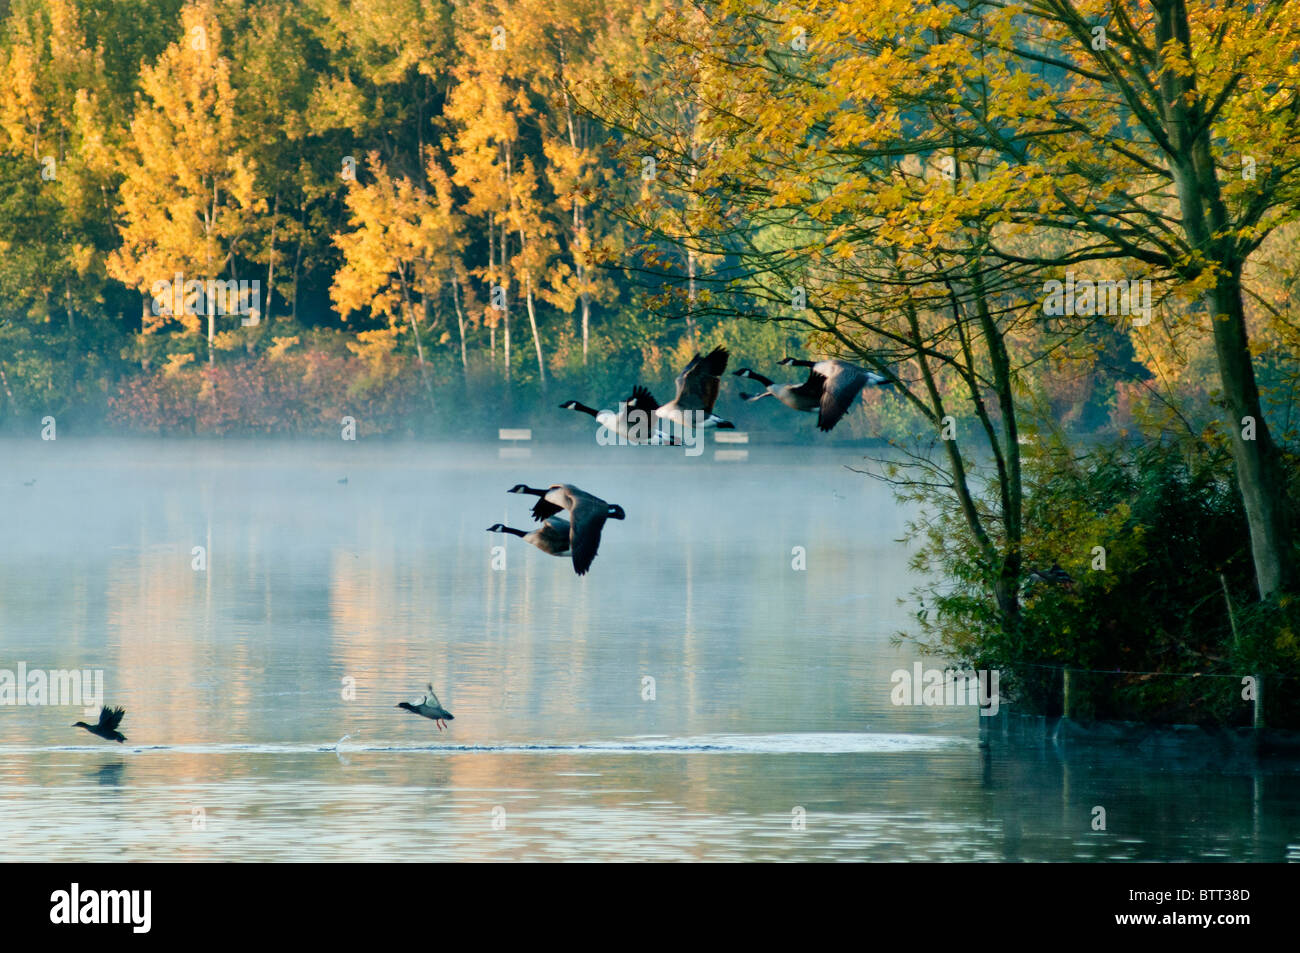 Flying Canada geese on a misty day, Worcestershire, UK - Stock Image